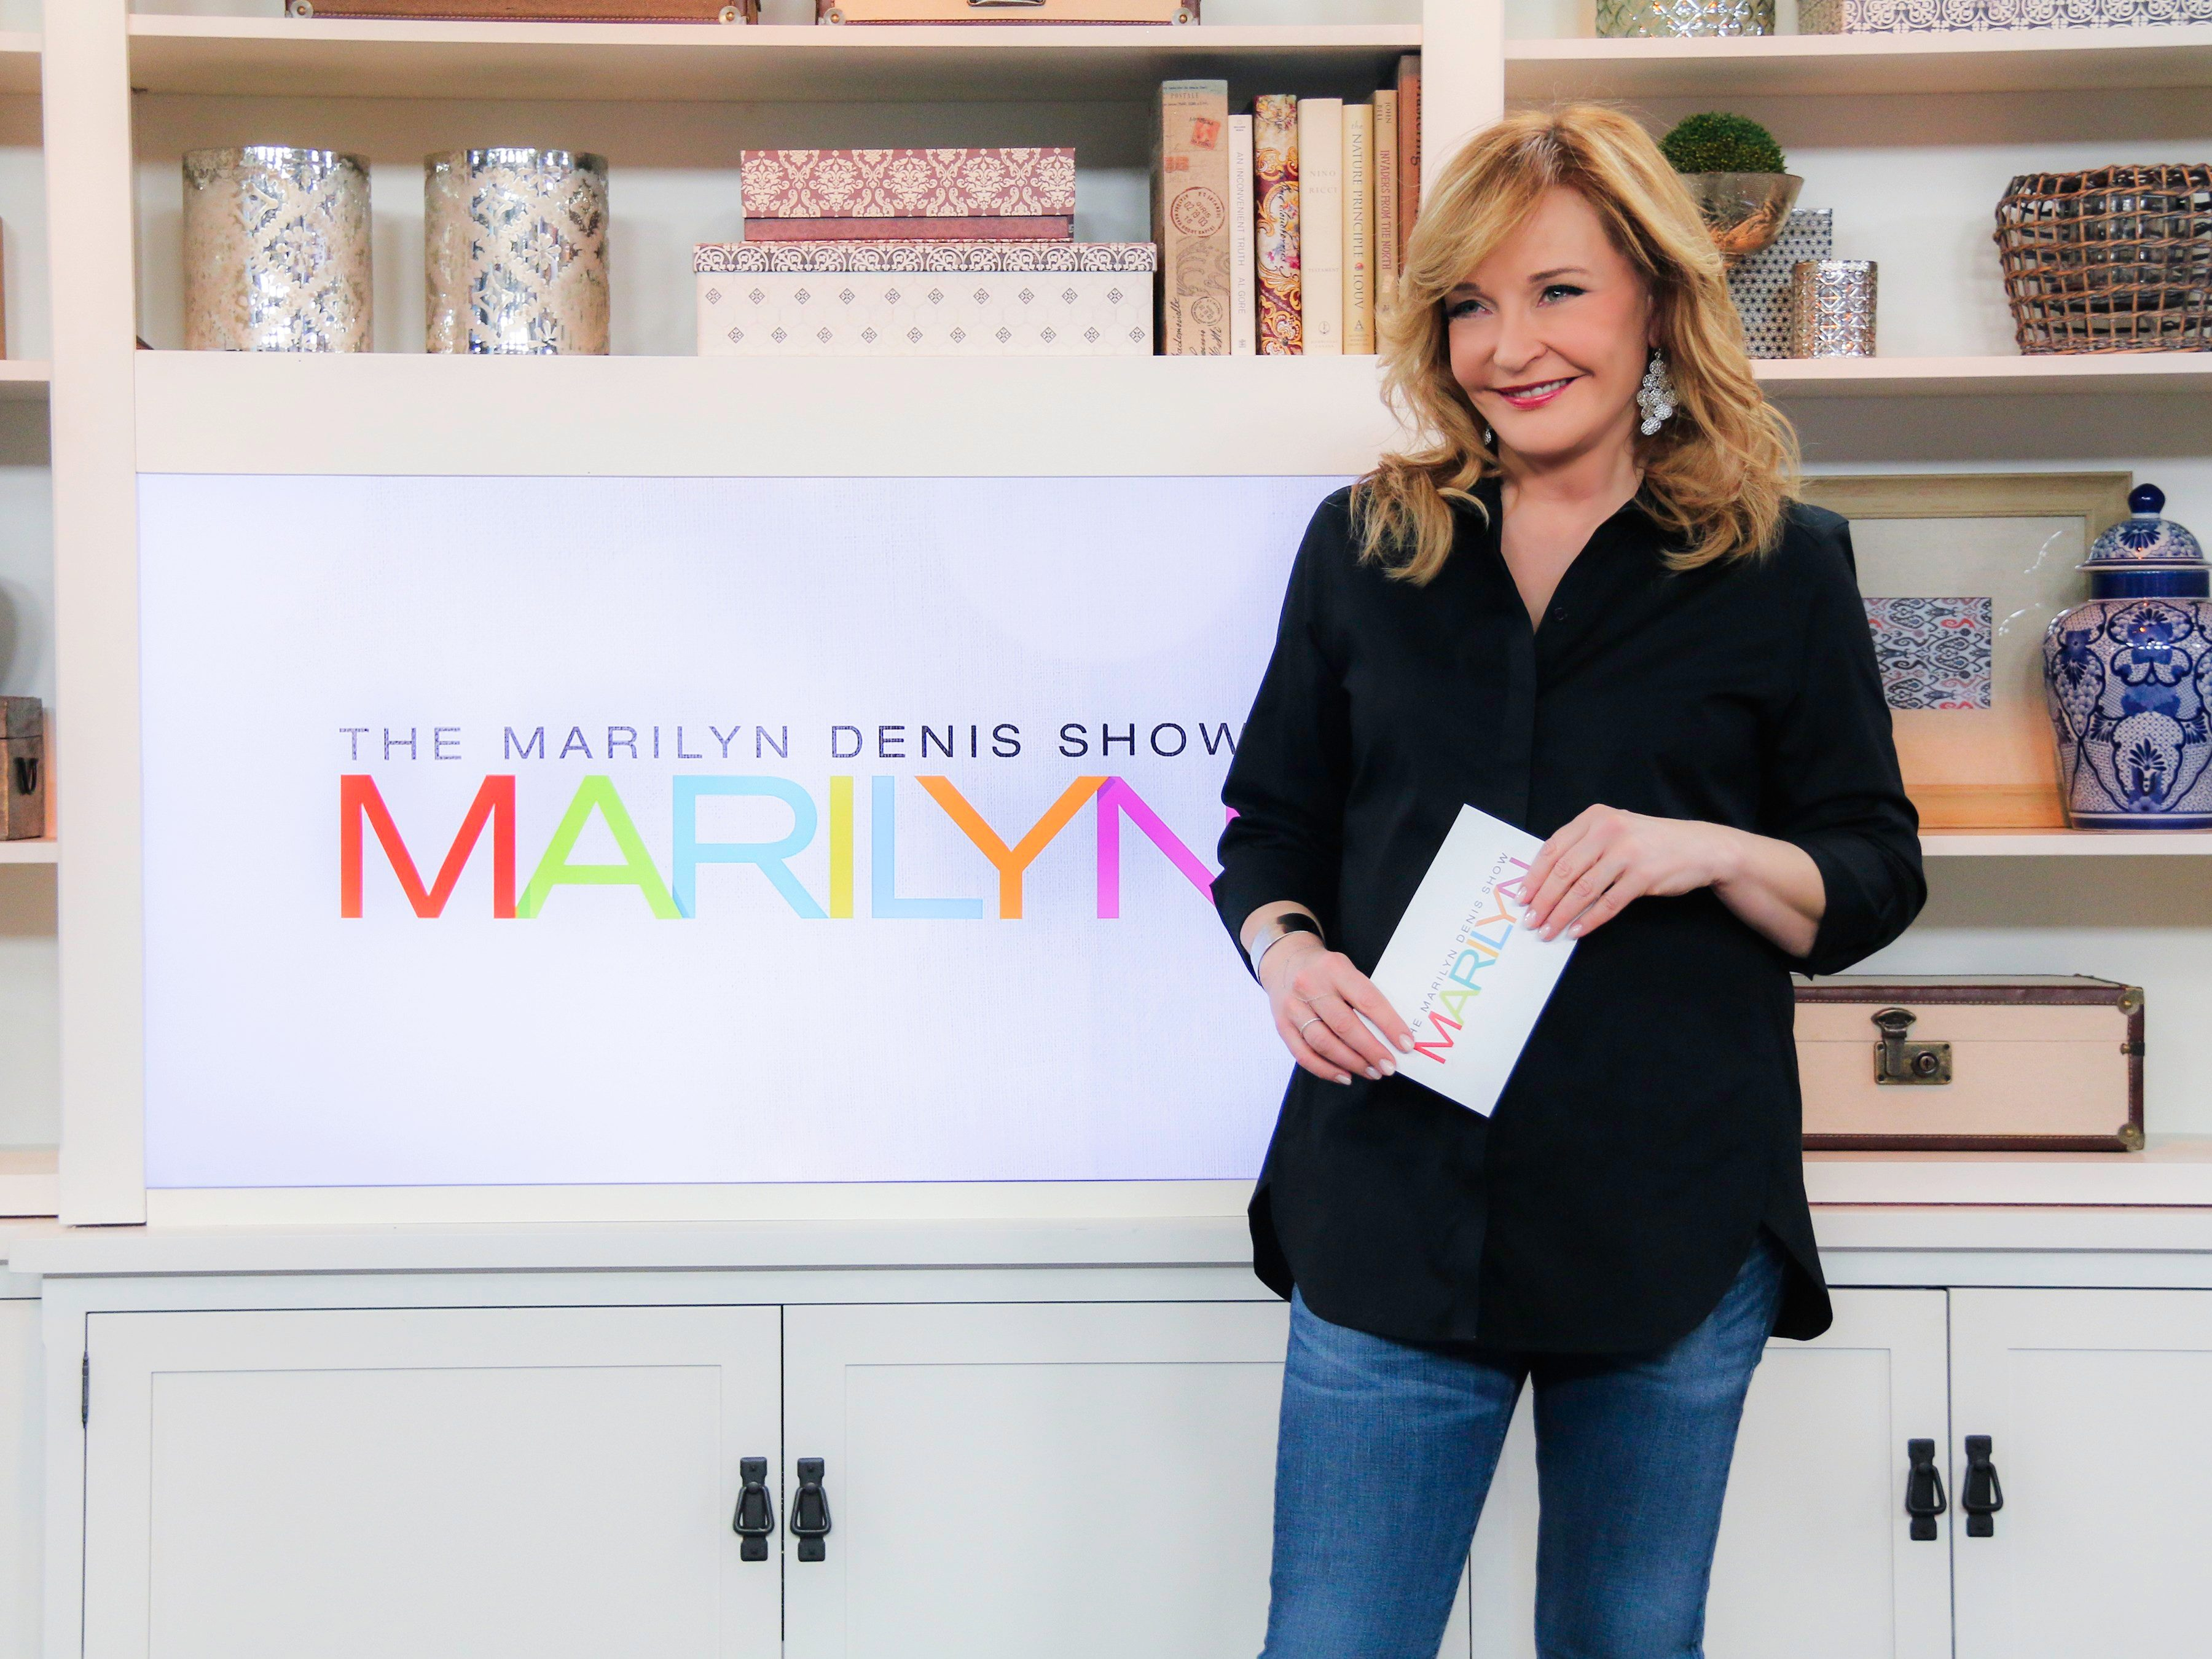 34. The Marilyn Denis Show